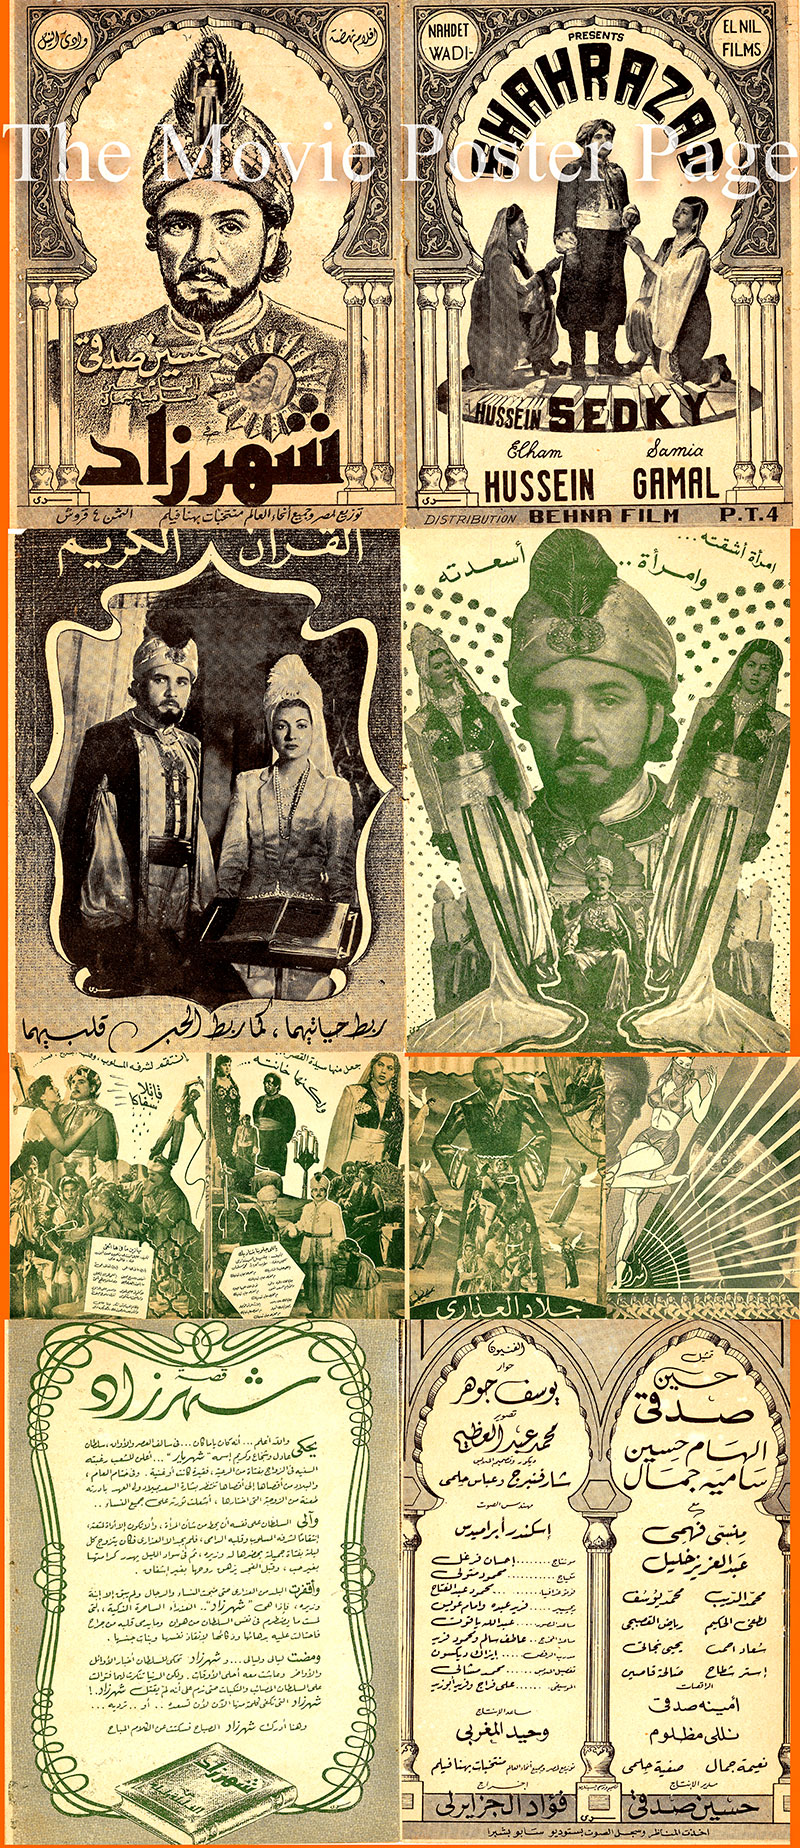 Pictured is an Egyptian promotional program for the 1946 Fouad El Jazairly film Scheherezade starring Hussein Sedki.